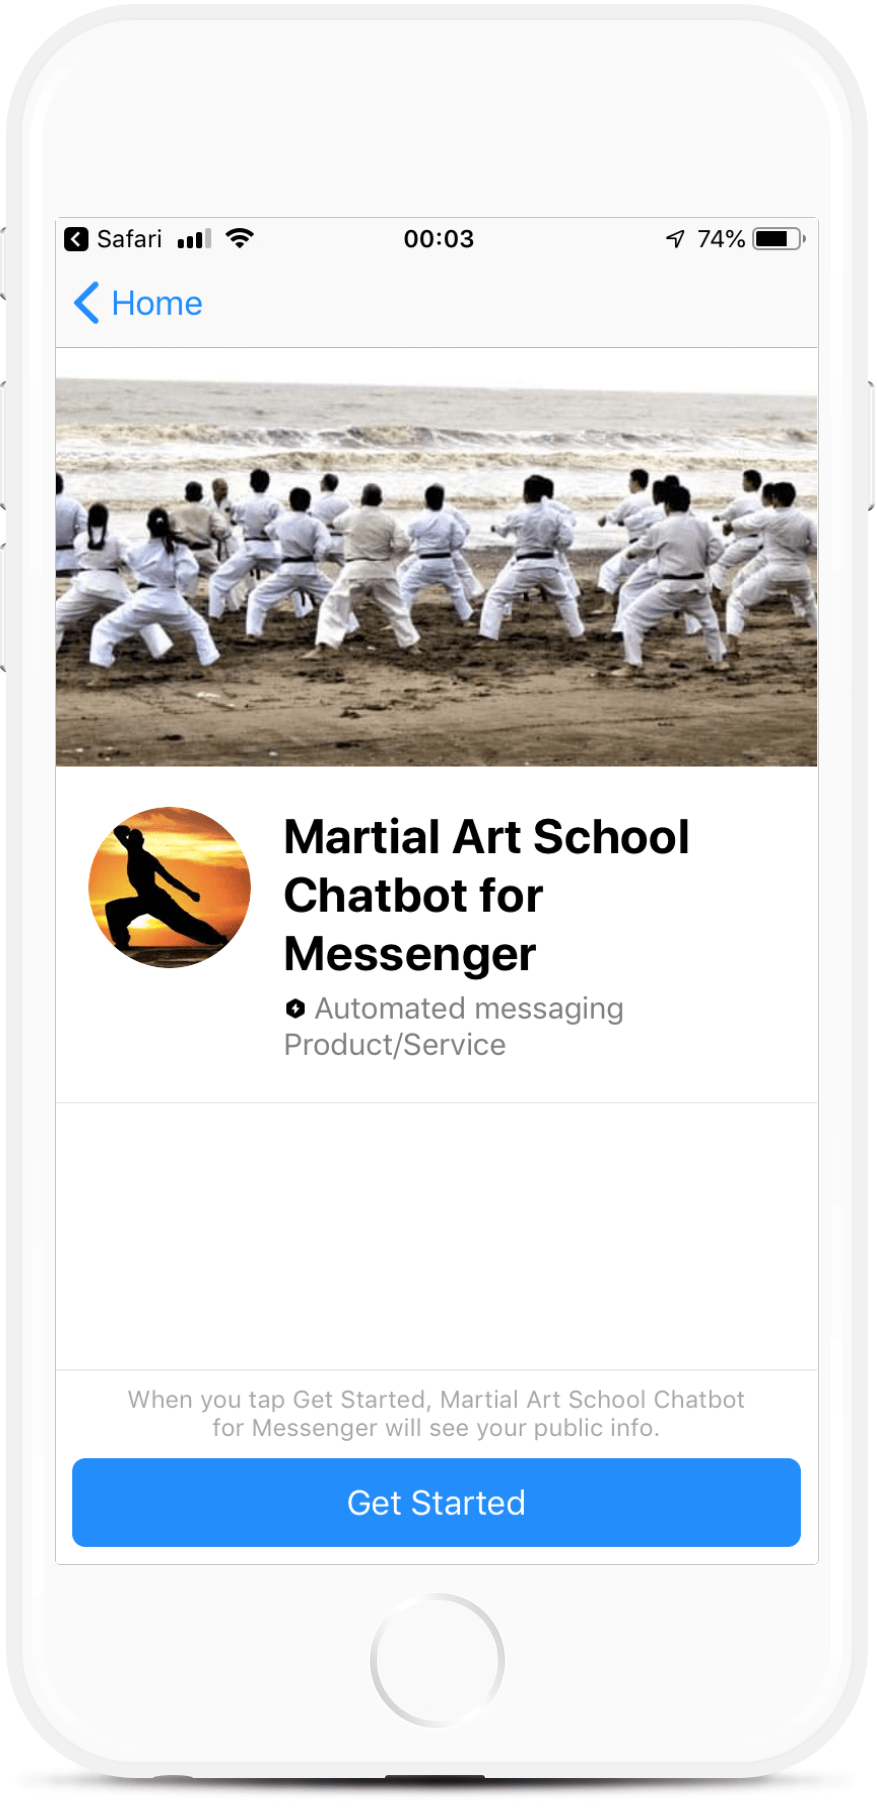 Martial Art School Chatbot for Messenger